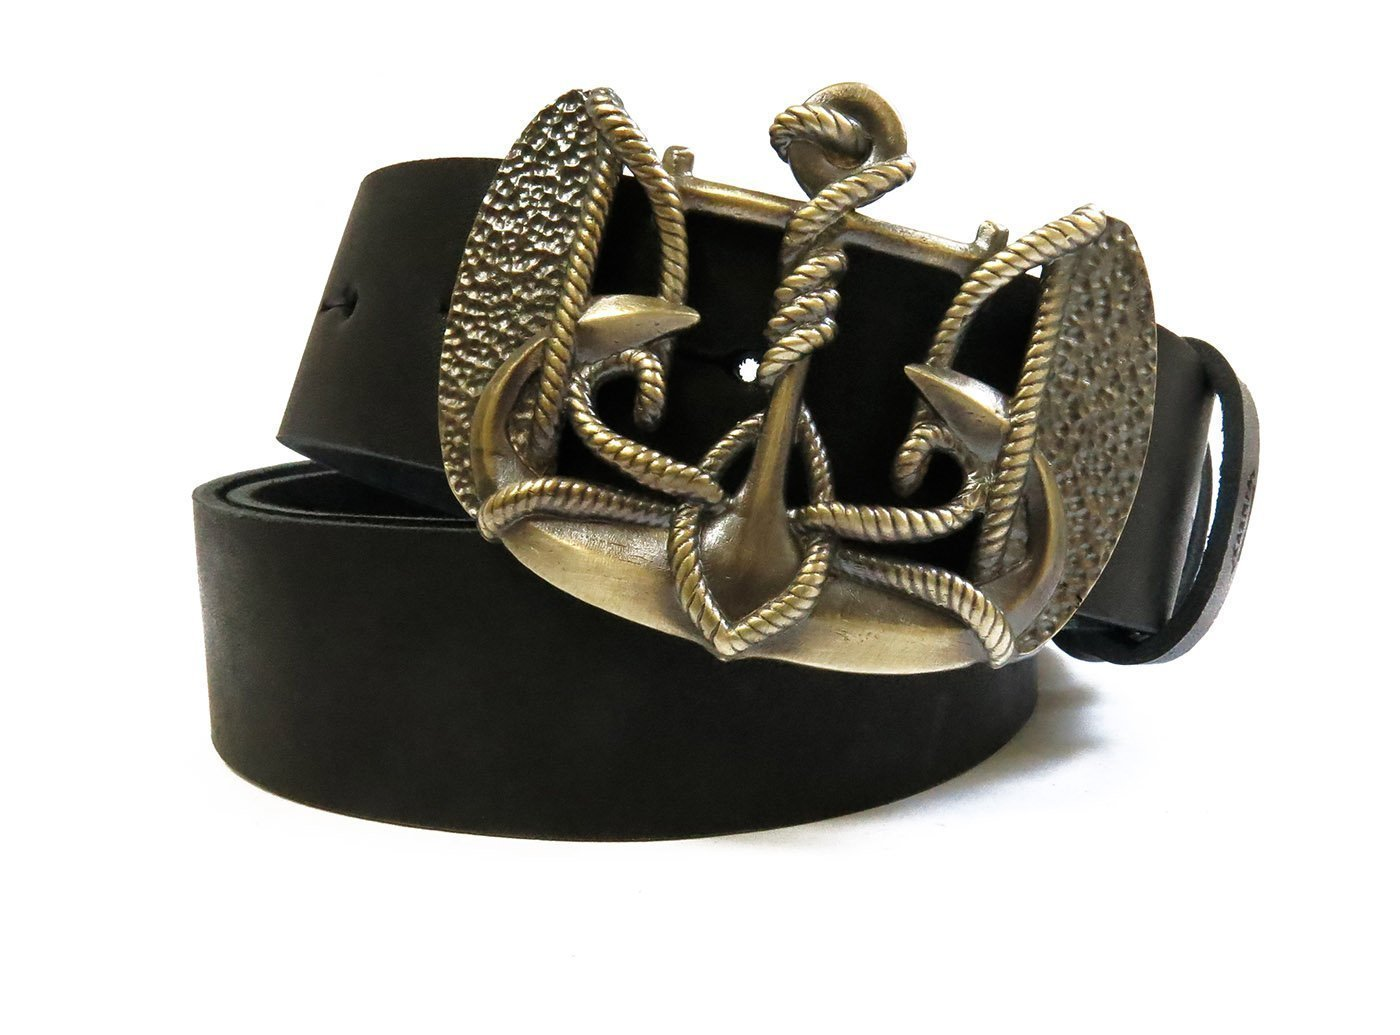 "Marine Buckle ""Anchor Trident"" on a Genuine Leather Belt"